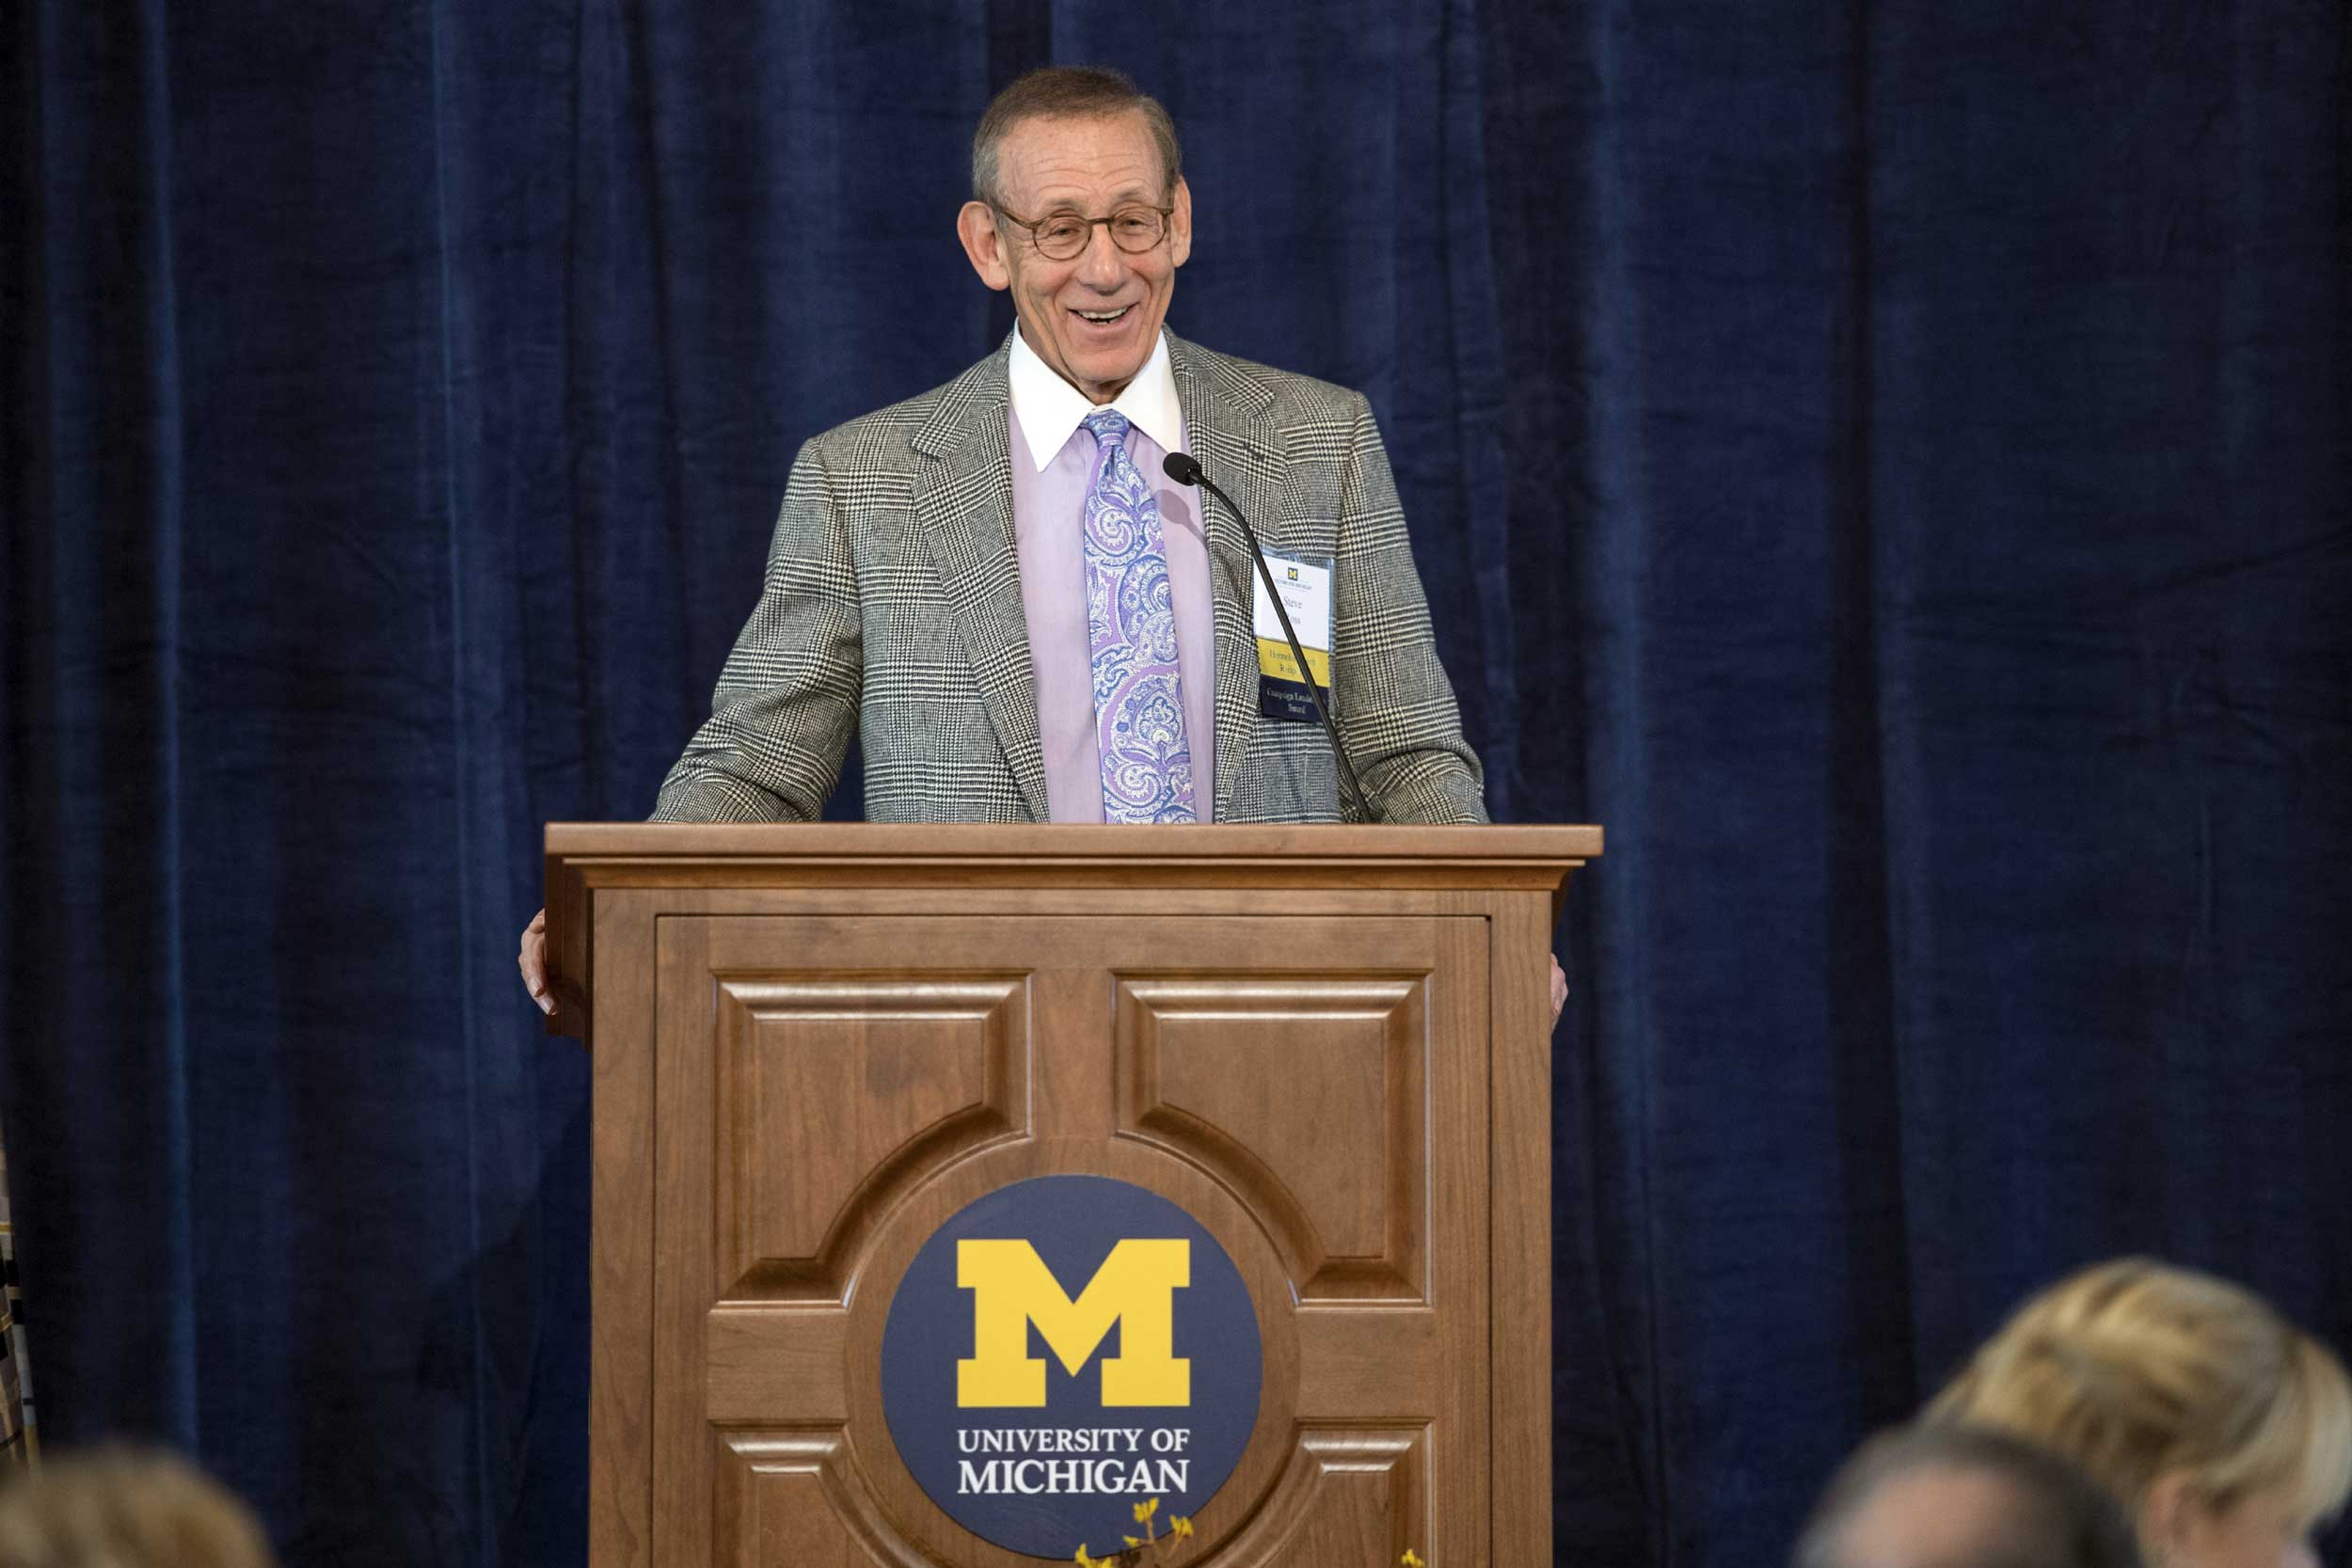 10/21/16 Stephen M. Ross is honored as an outstanding volunteer with the prestigious David B. Hermelin Award for Fundraising Volunteer Leadership. Image credit: University of Michigan